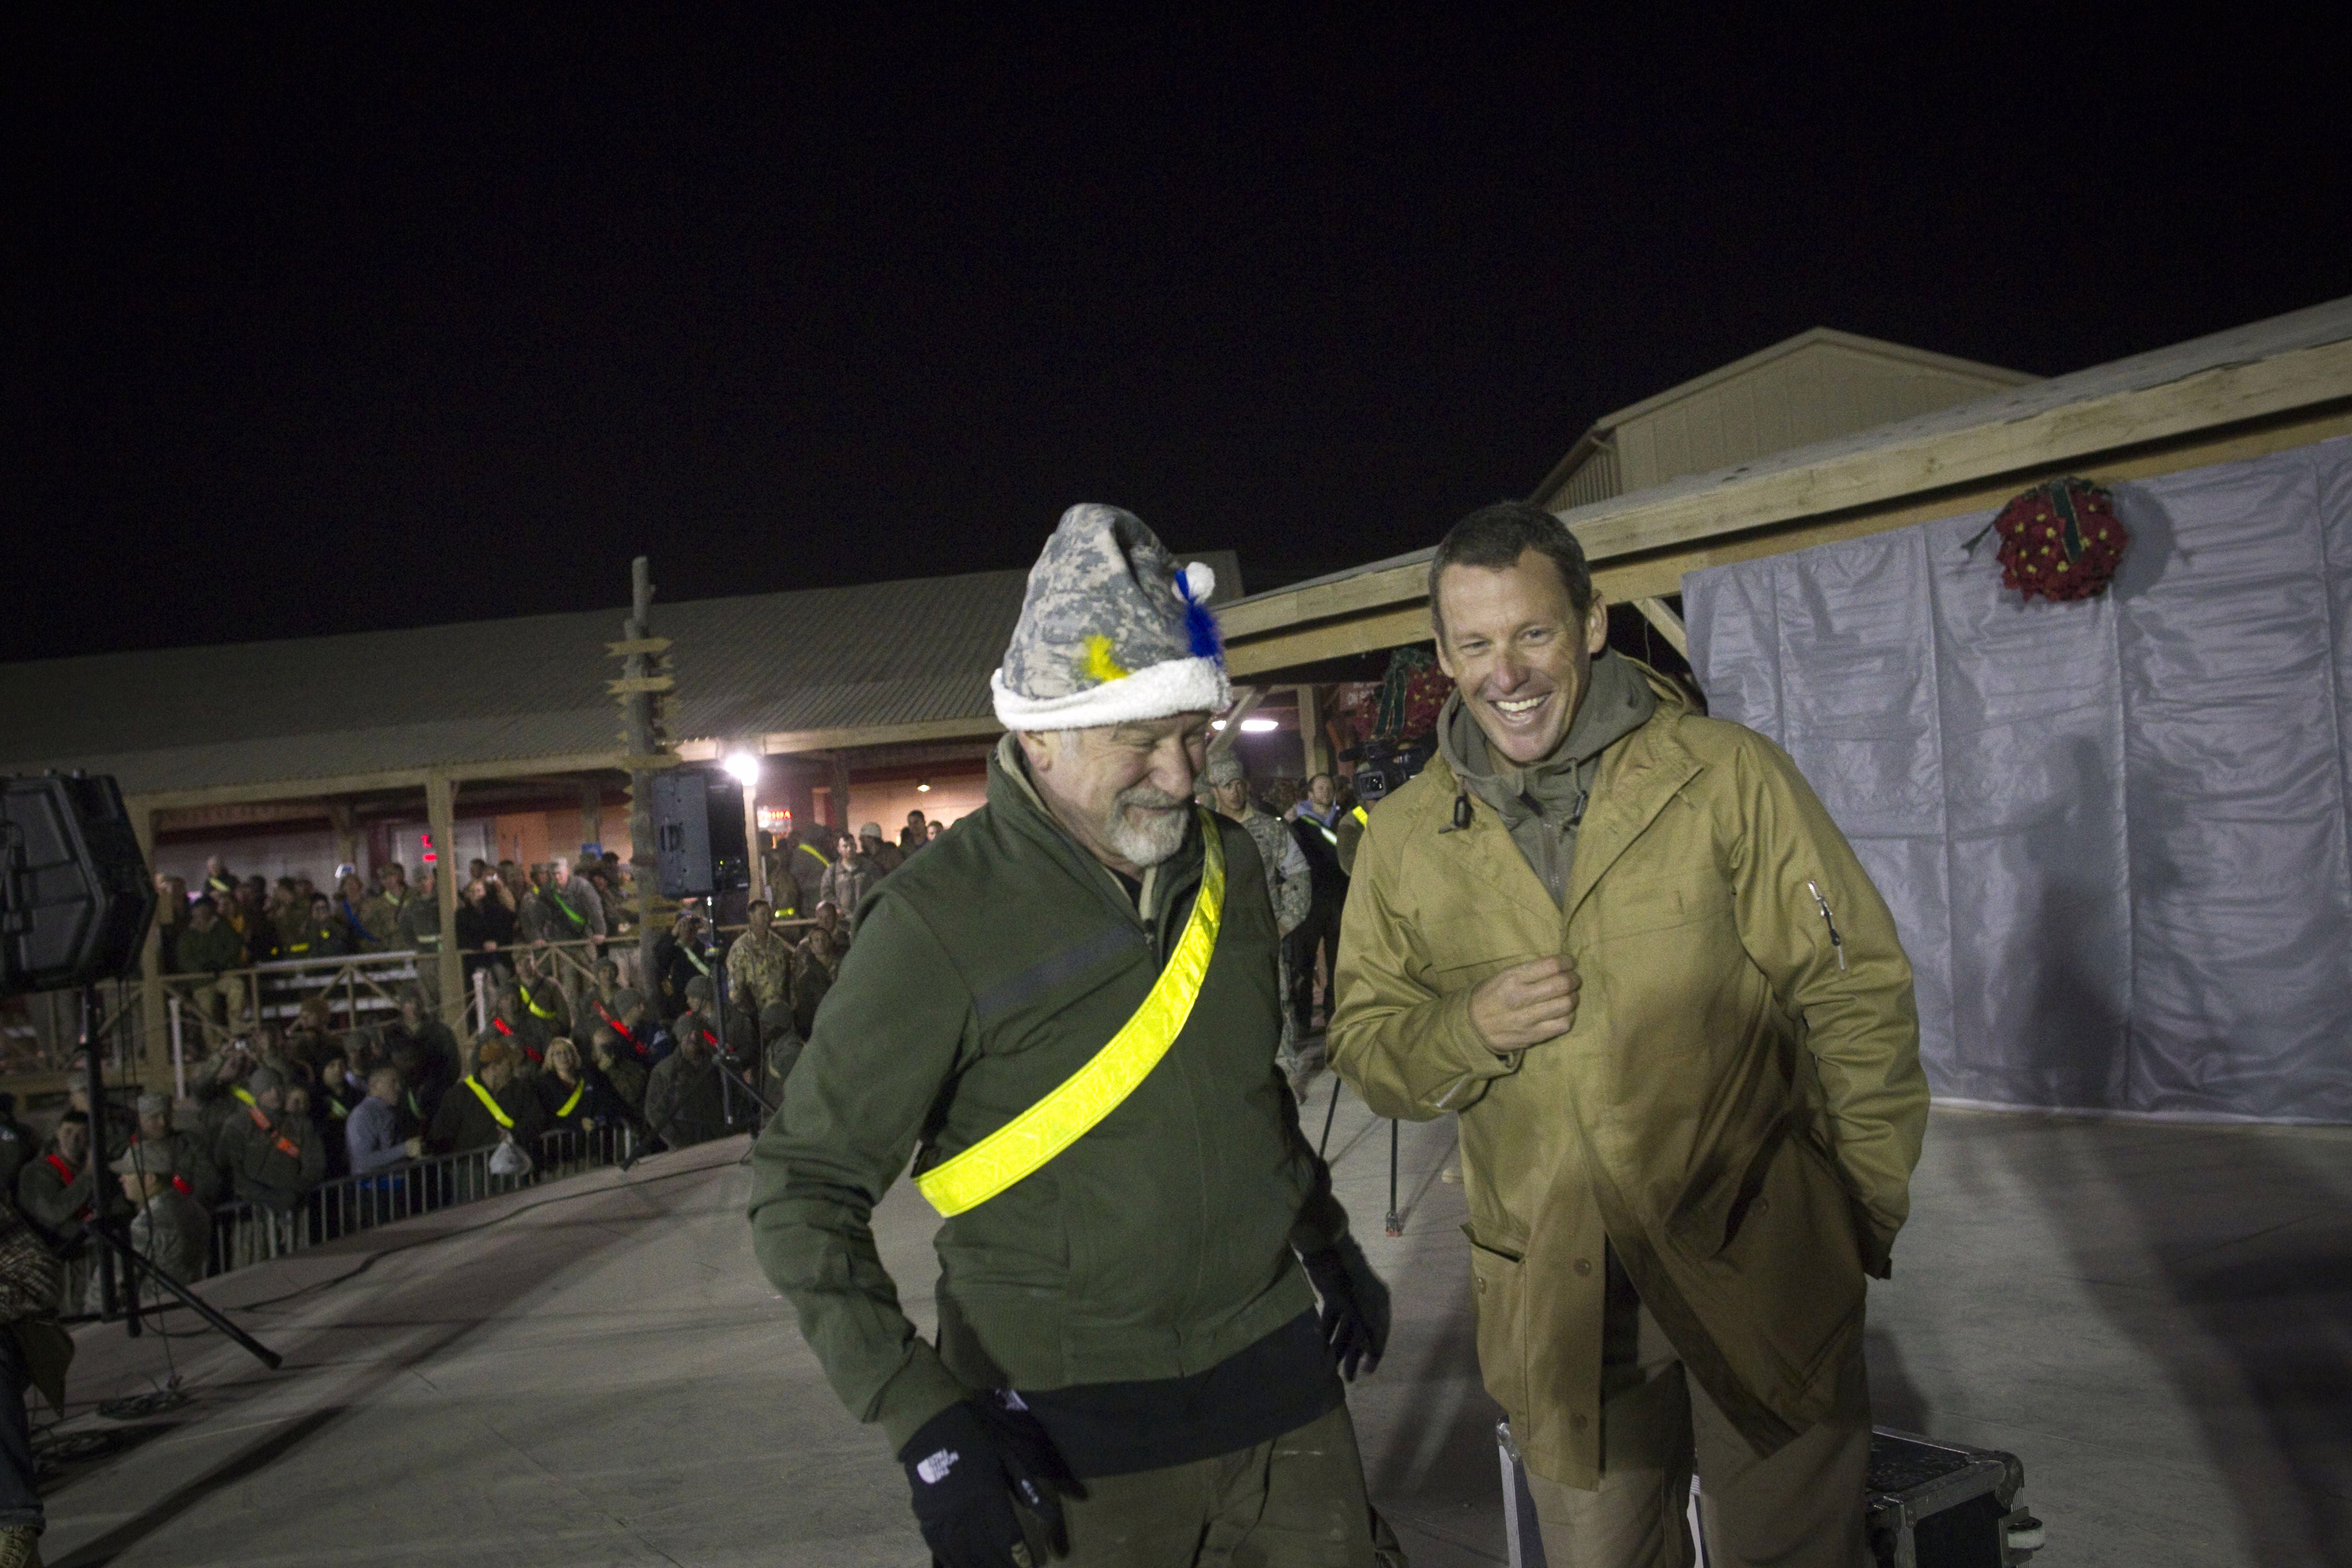 Lance Armstrong, Robin Williams in Afghanistan